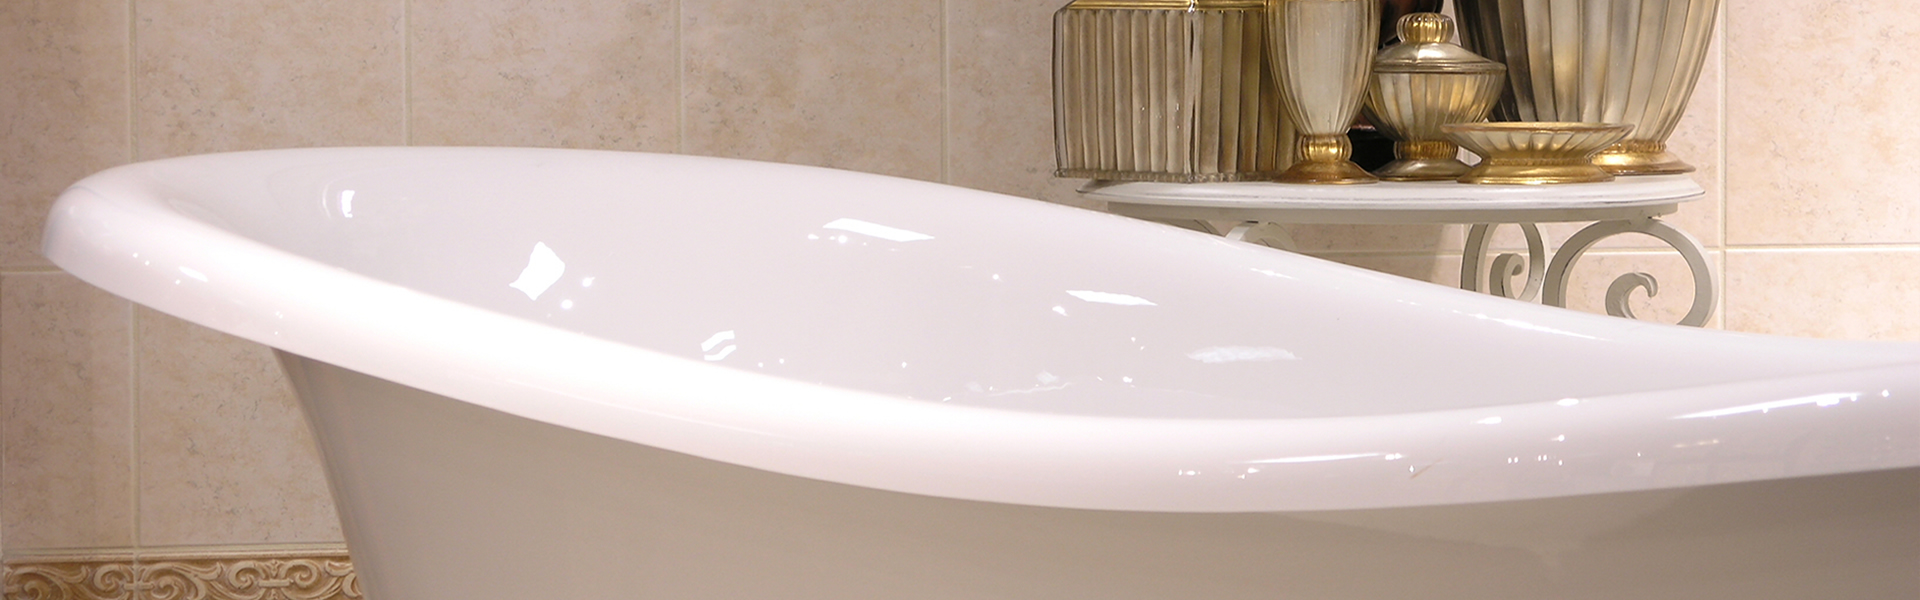 BATHTUB REFINISHING IN AUSTIN, TX, CULTURED AND LAMINATE FORMICA,  AFFORDABLE CABINETS AND COUNTERTOPS RESURFACING, Cabinets Refacing, Tile,  ...